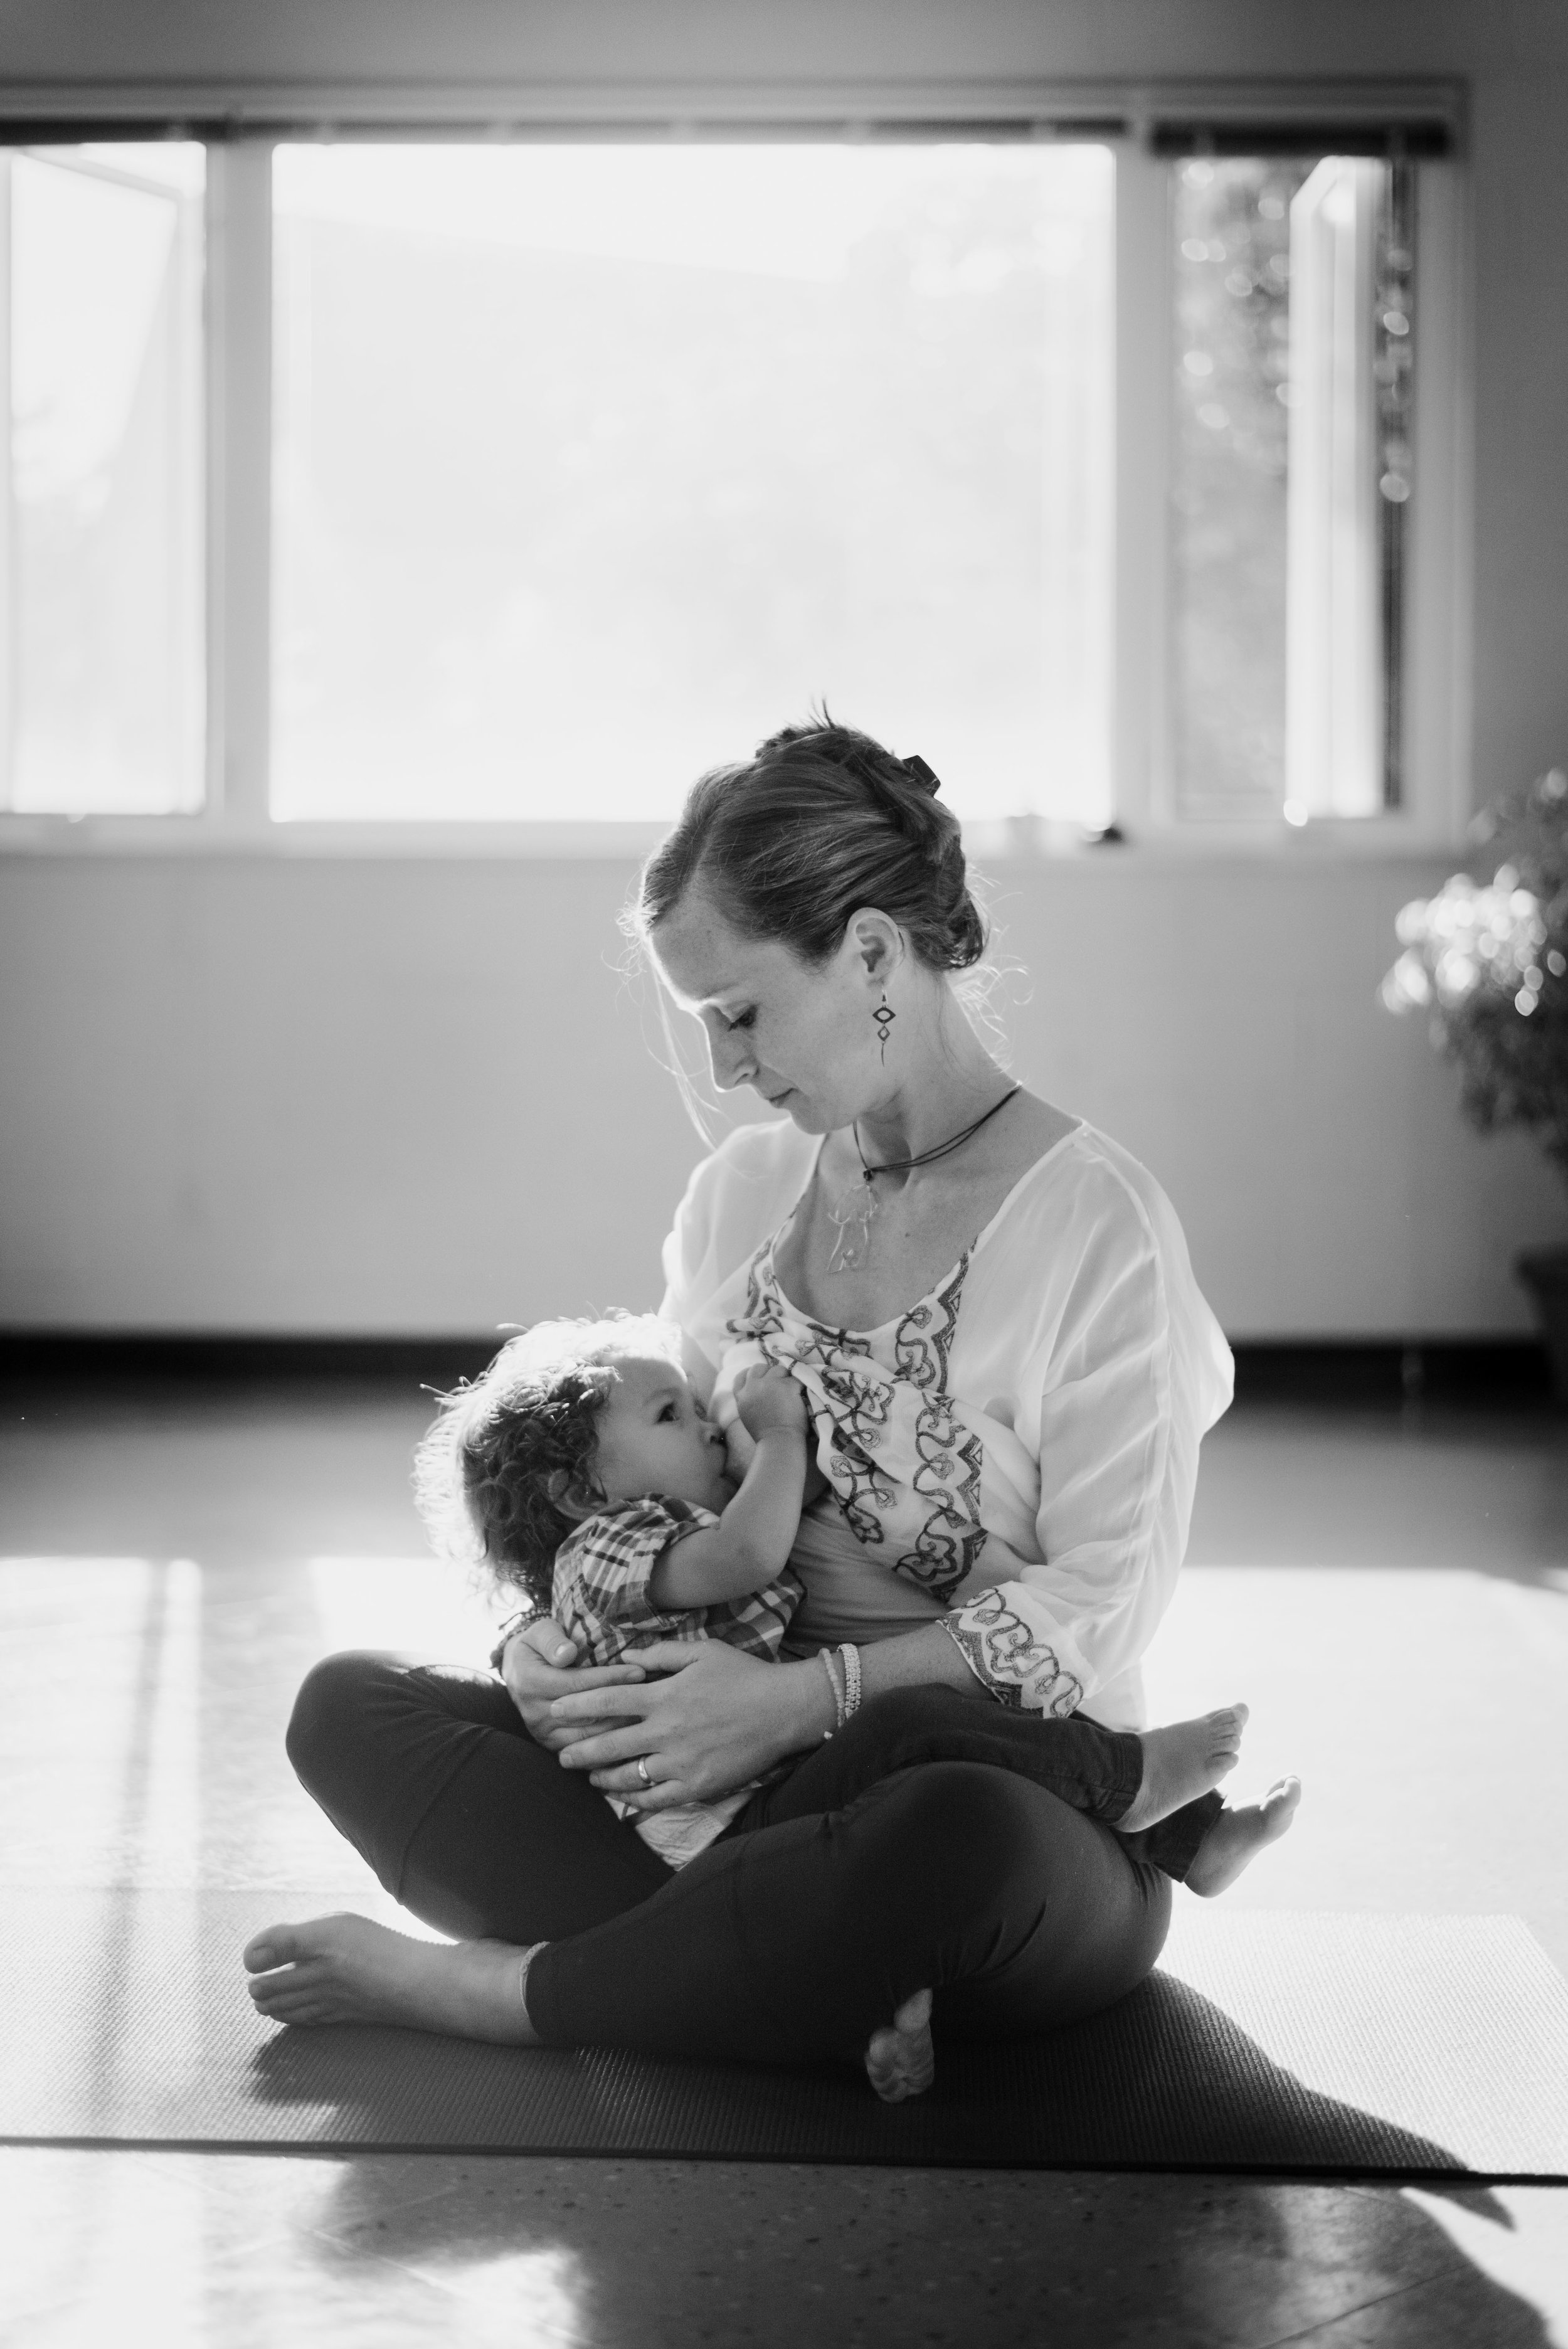 """WHAT IS THE BEST OR MOST USEFUL PIECE ADVICE YOU HAVE RECEIVED ABOUT BEING A MOTHER? - I overheard Dr. Senders at Senders Pediatrics give a parent a piece of advice that I pass on to everyone: lower your expectations. Such great, simple advice! There are going to be tough moments when you doubt everything and moments of ease when you just feel like you've got it. We all just have to roll with it. We have to listen to our gut, cut ourselves some slack, and lower our expectations of what """"motherhood"""" looks like."""